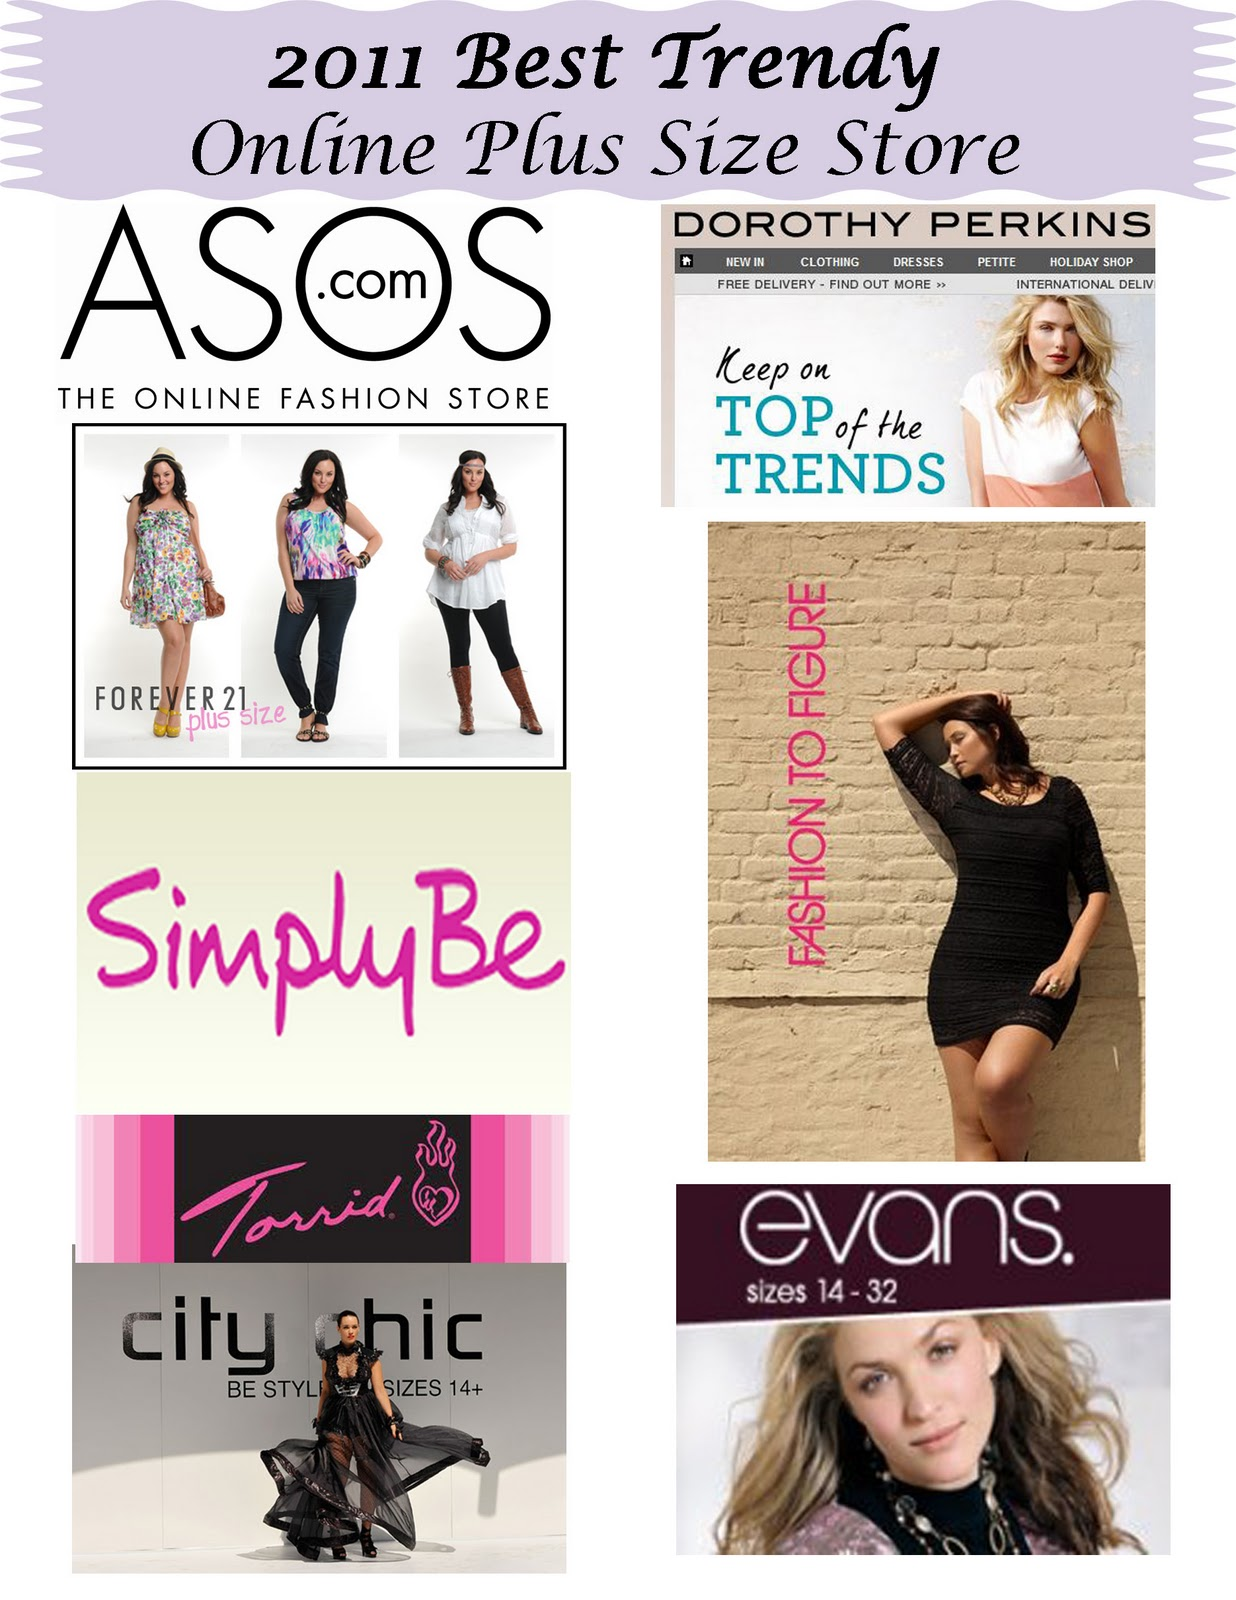 best trendy plus size online store | stylish curves